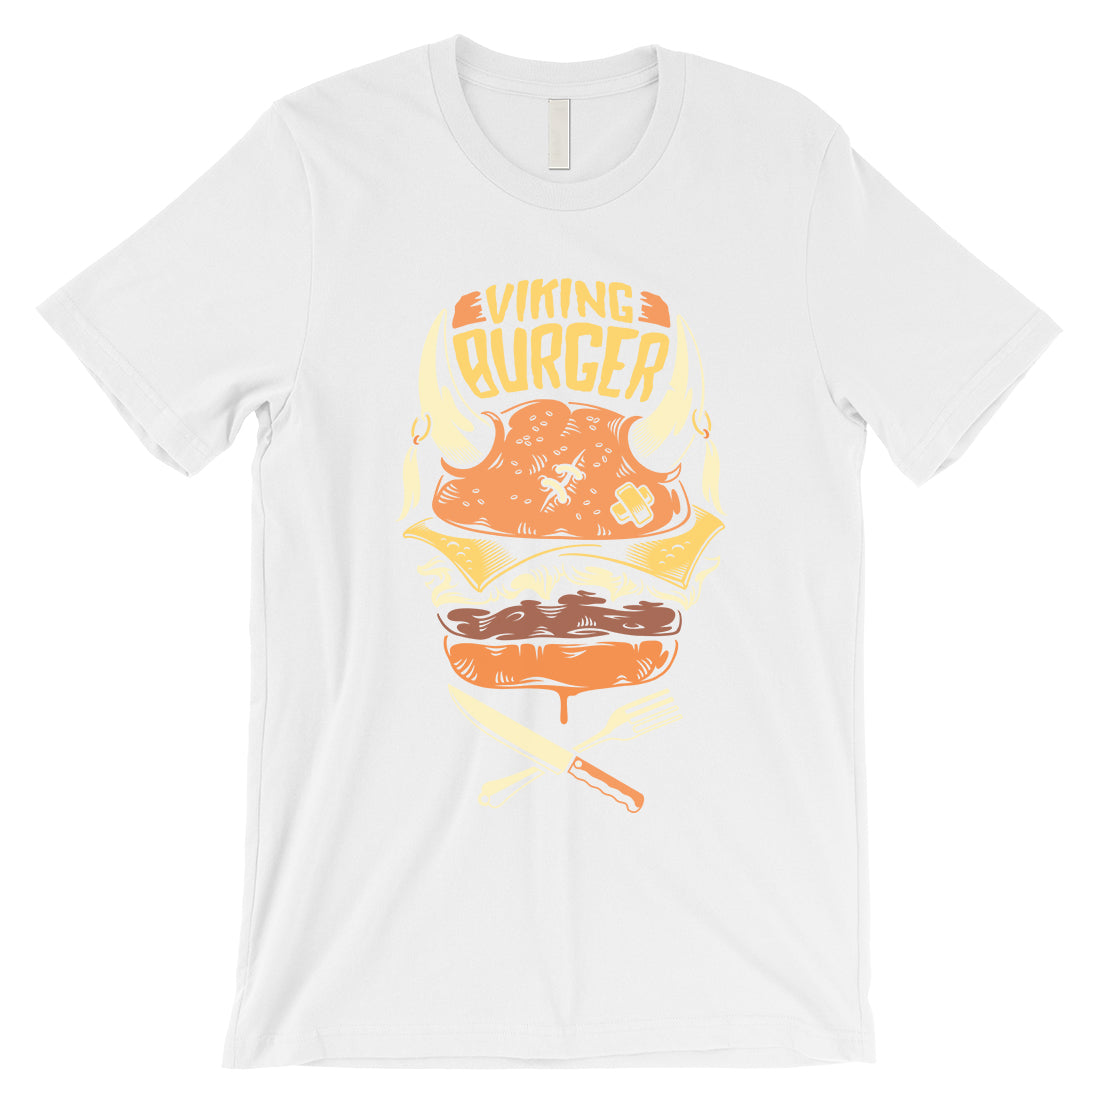 522051f2 Viking Burger Mens Unique Vintage Style T-Shirt For Burger Lovers